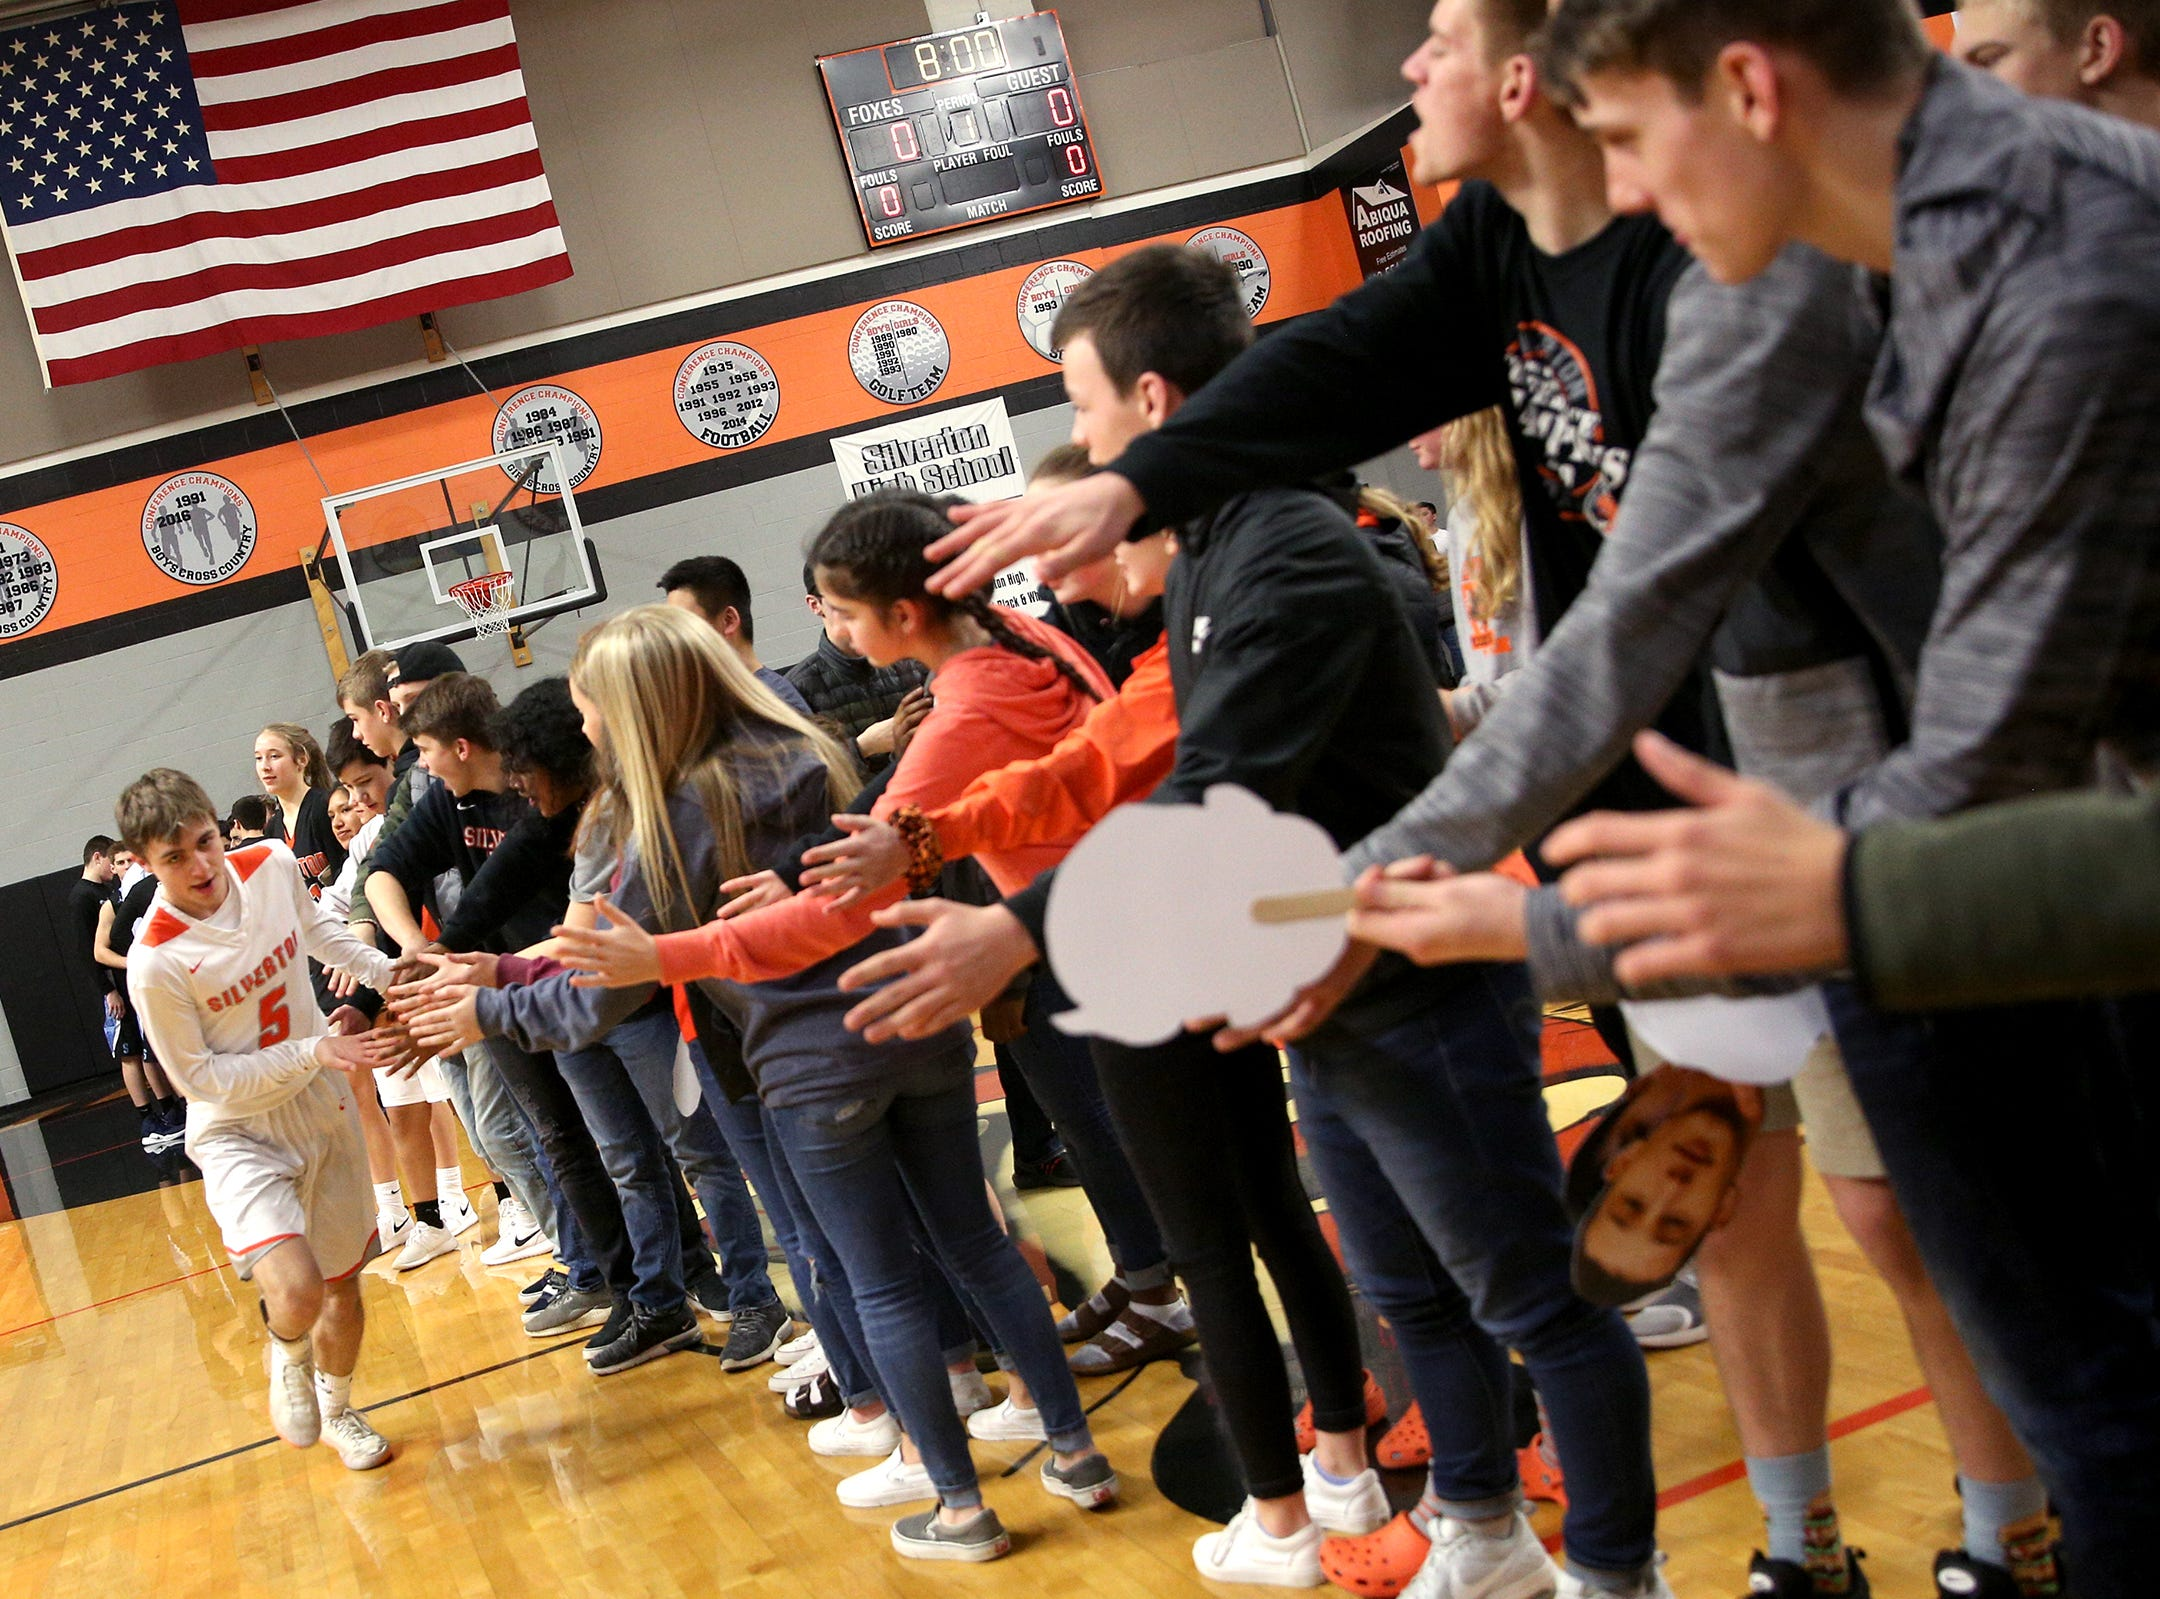 Silverton's Drake Ulven (5) high-fives a row of students as he's introduced in the starting lineup before the Silverton vs. Springfield boys basketball OSAA state playoffs game at Silverton High School in Silverton on Saturday, March 2, 2019.